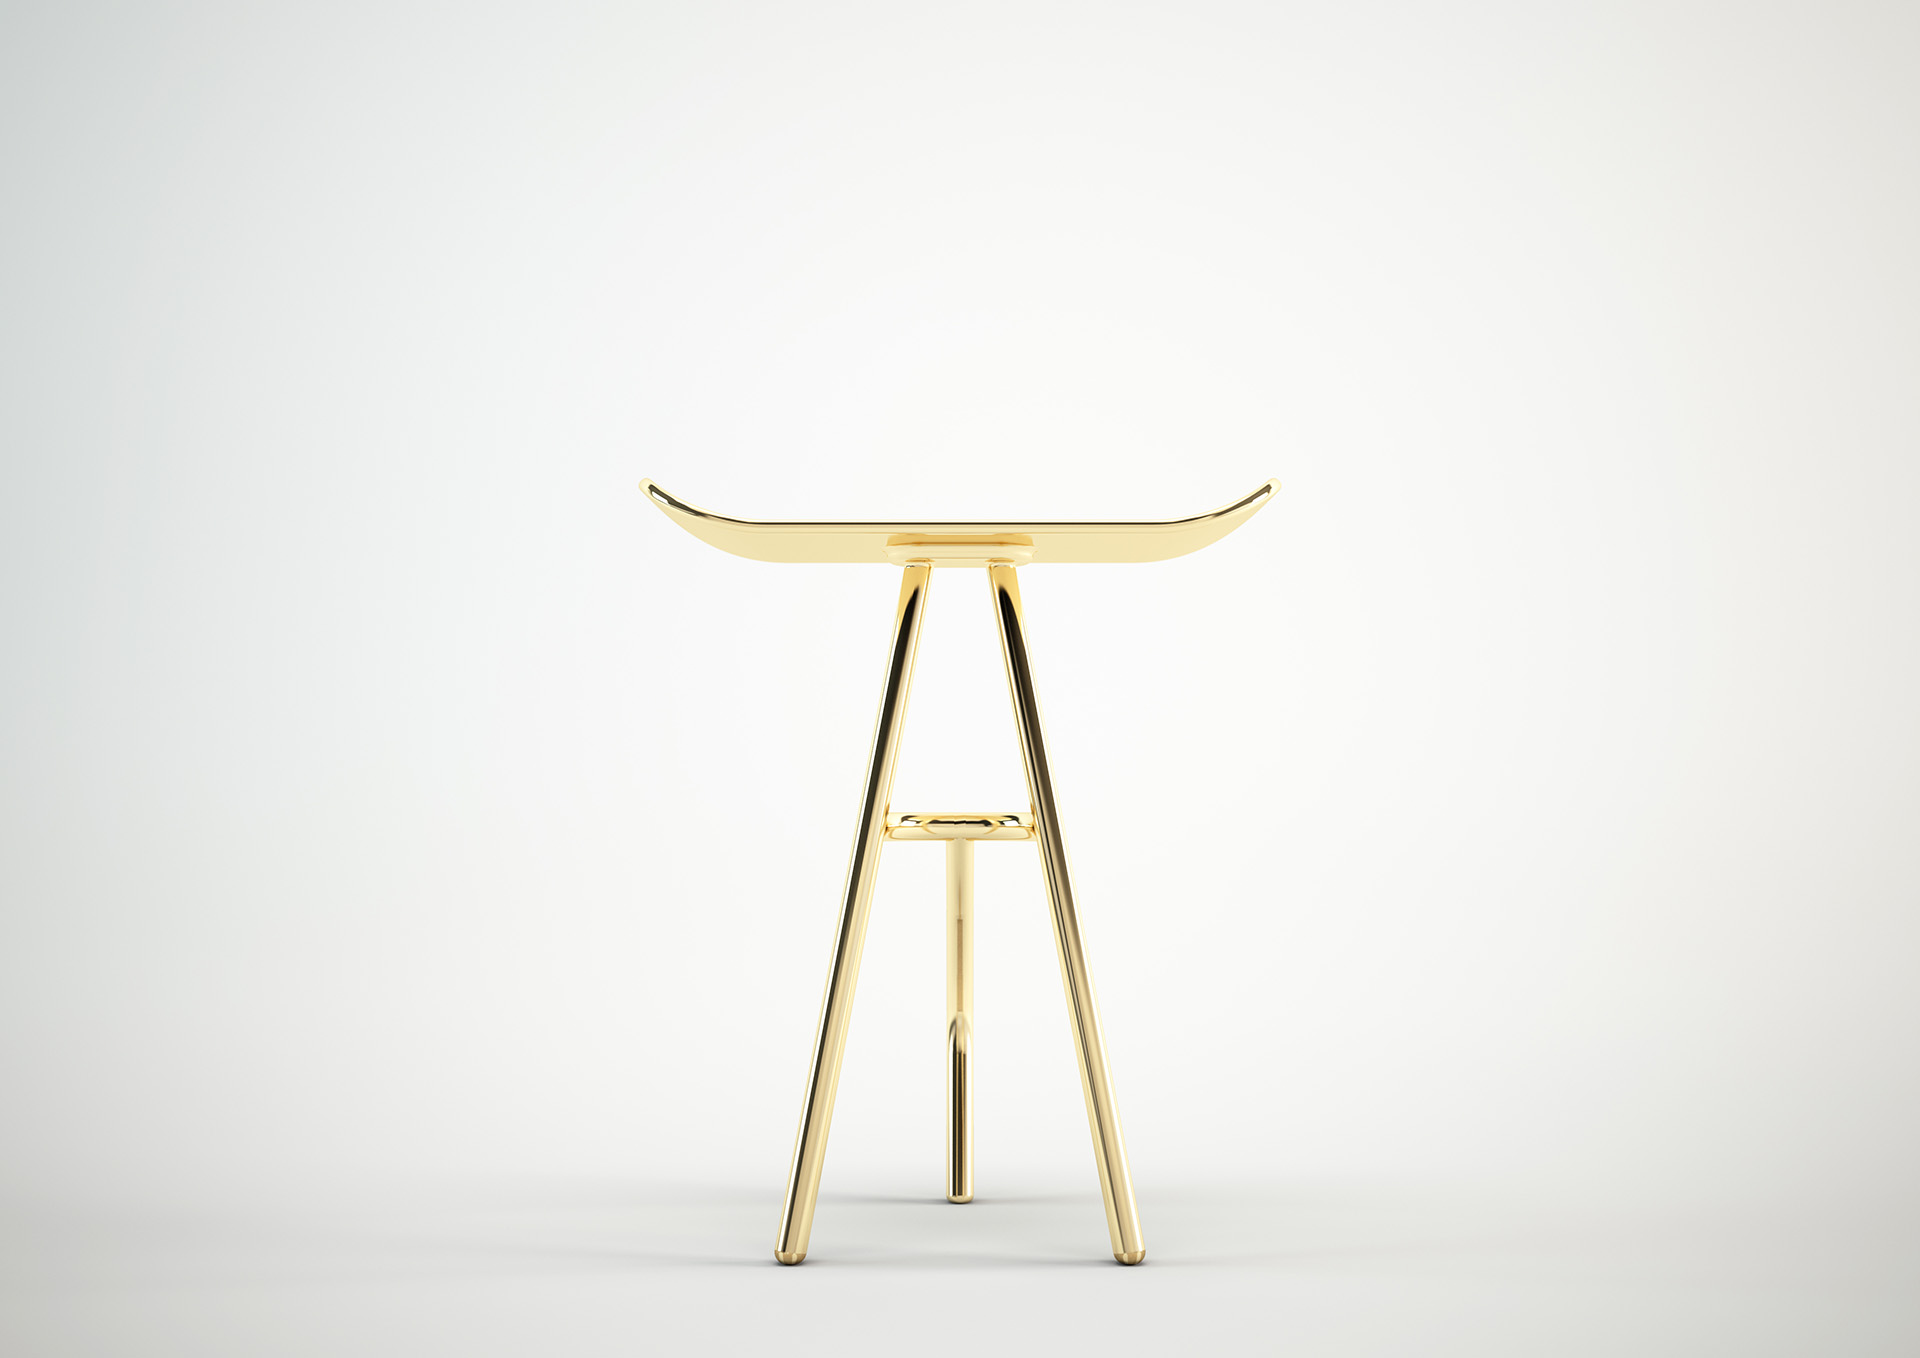 THE STOOL 2